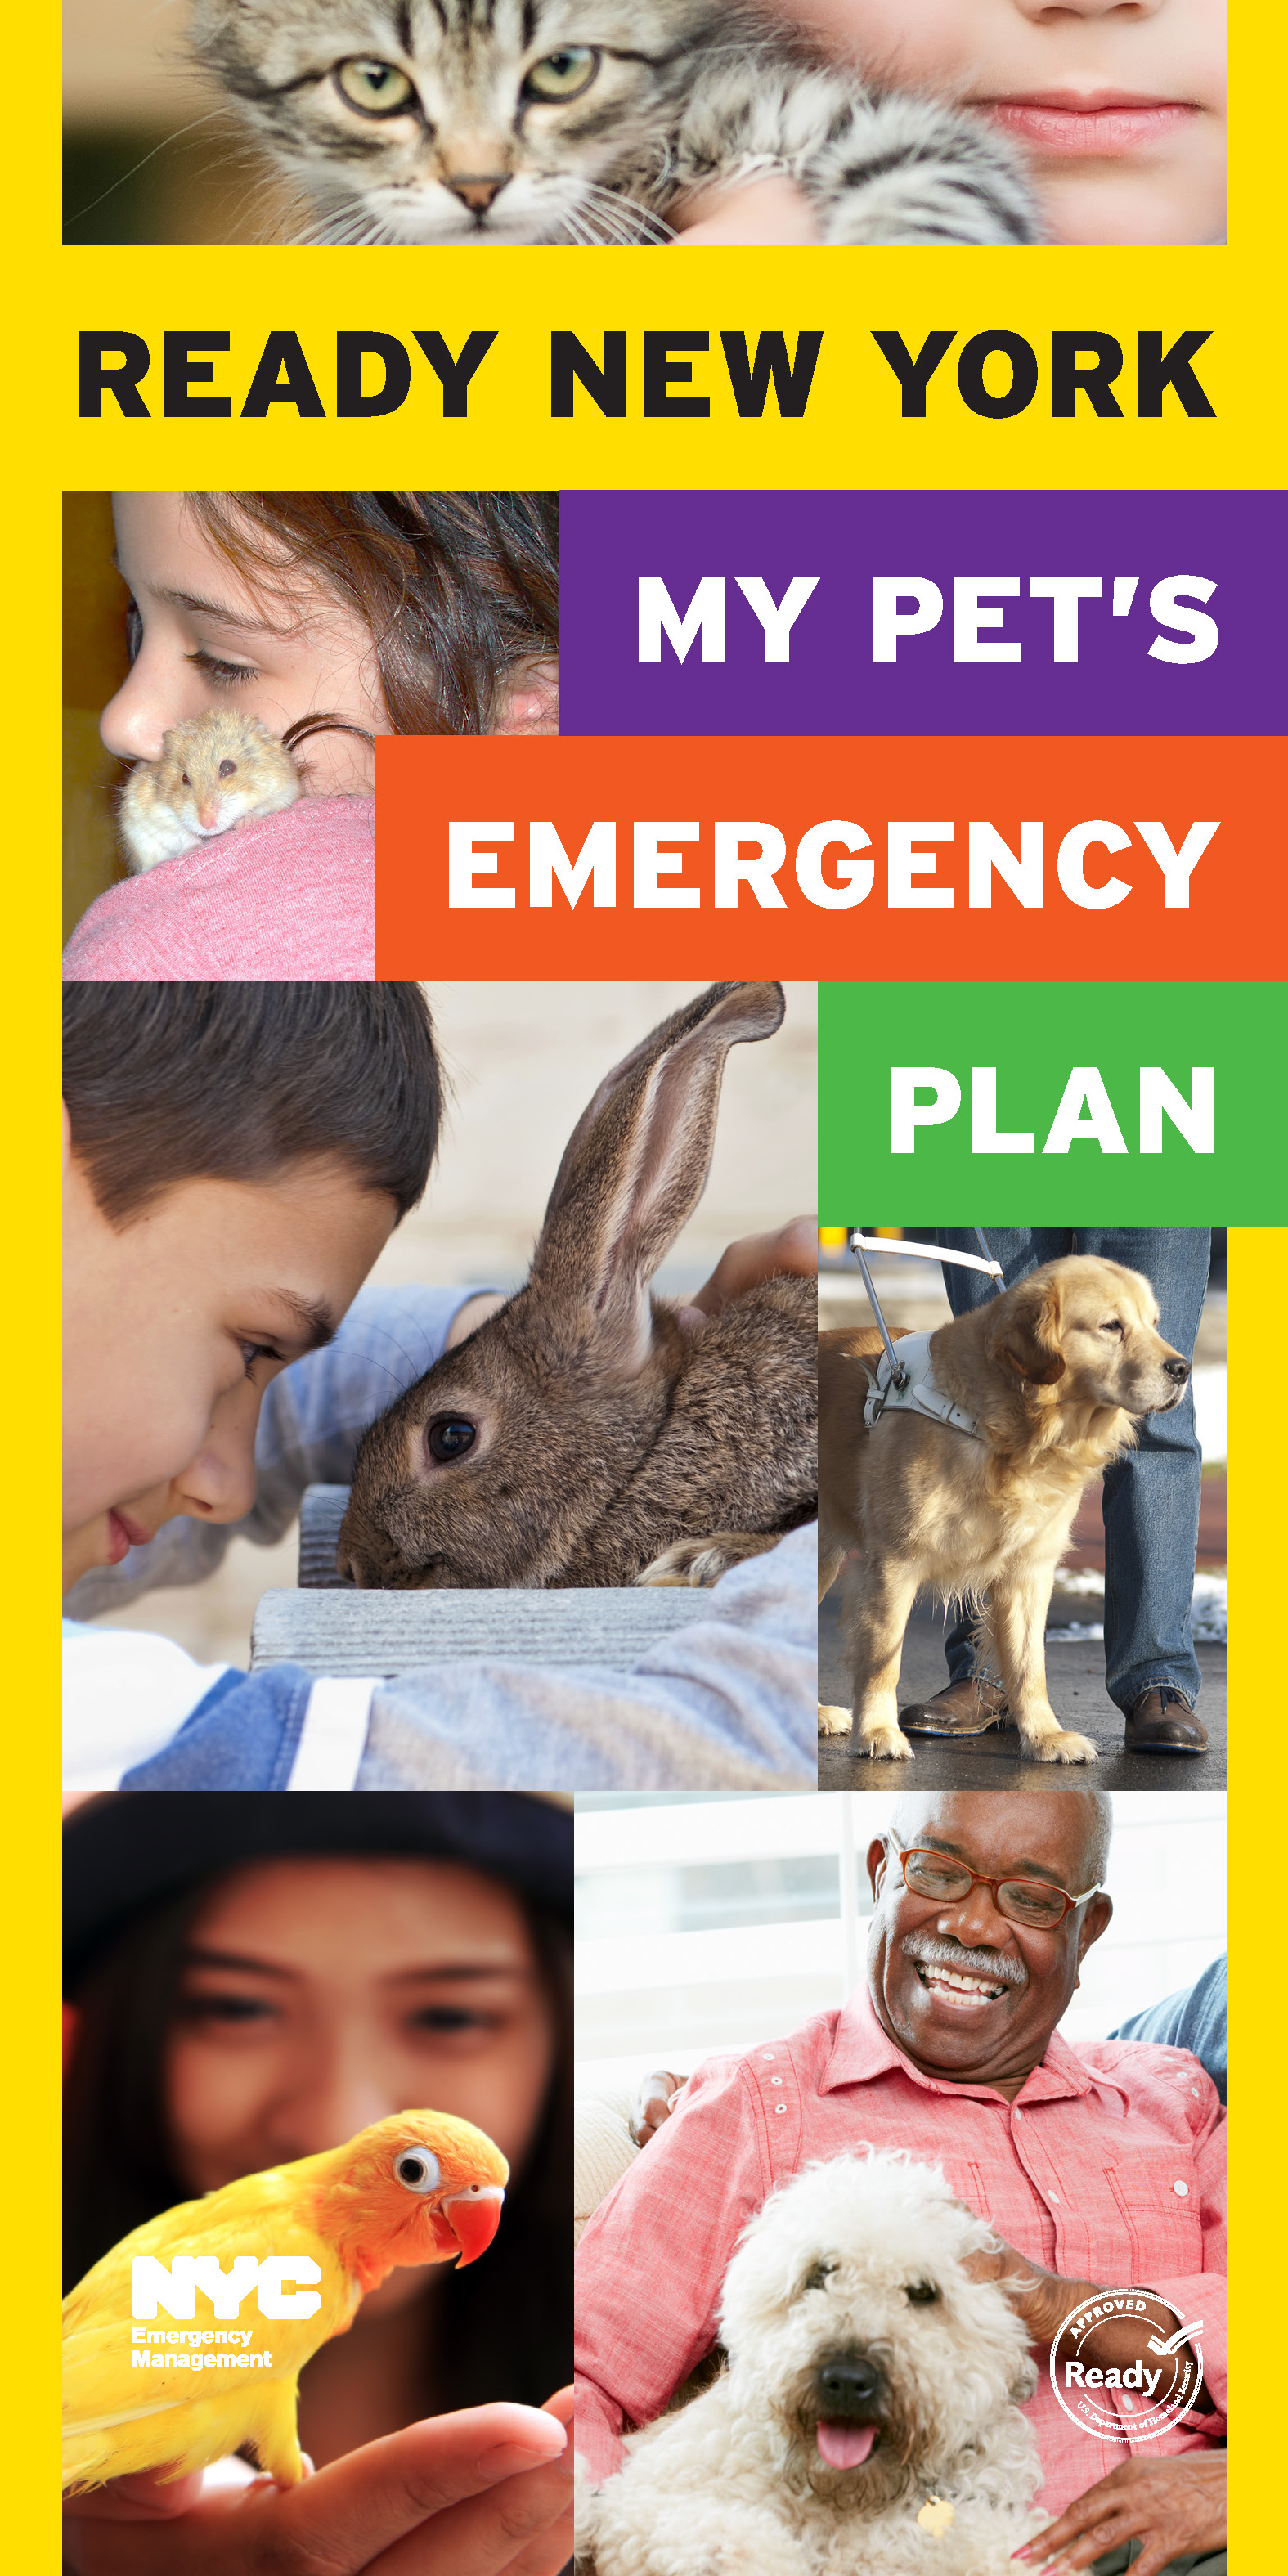 My Pet's Emergency Plan cover in English